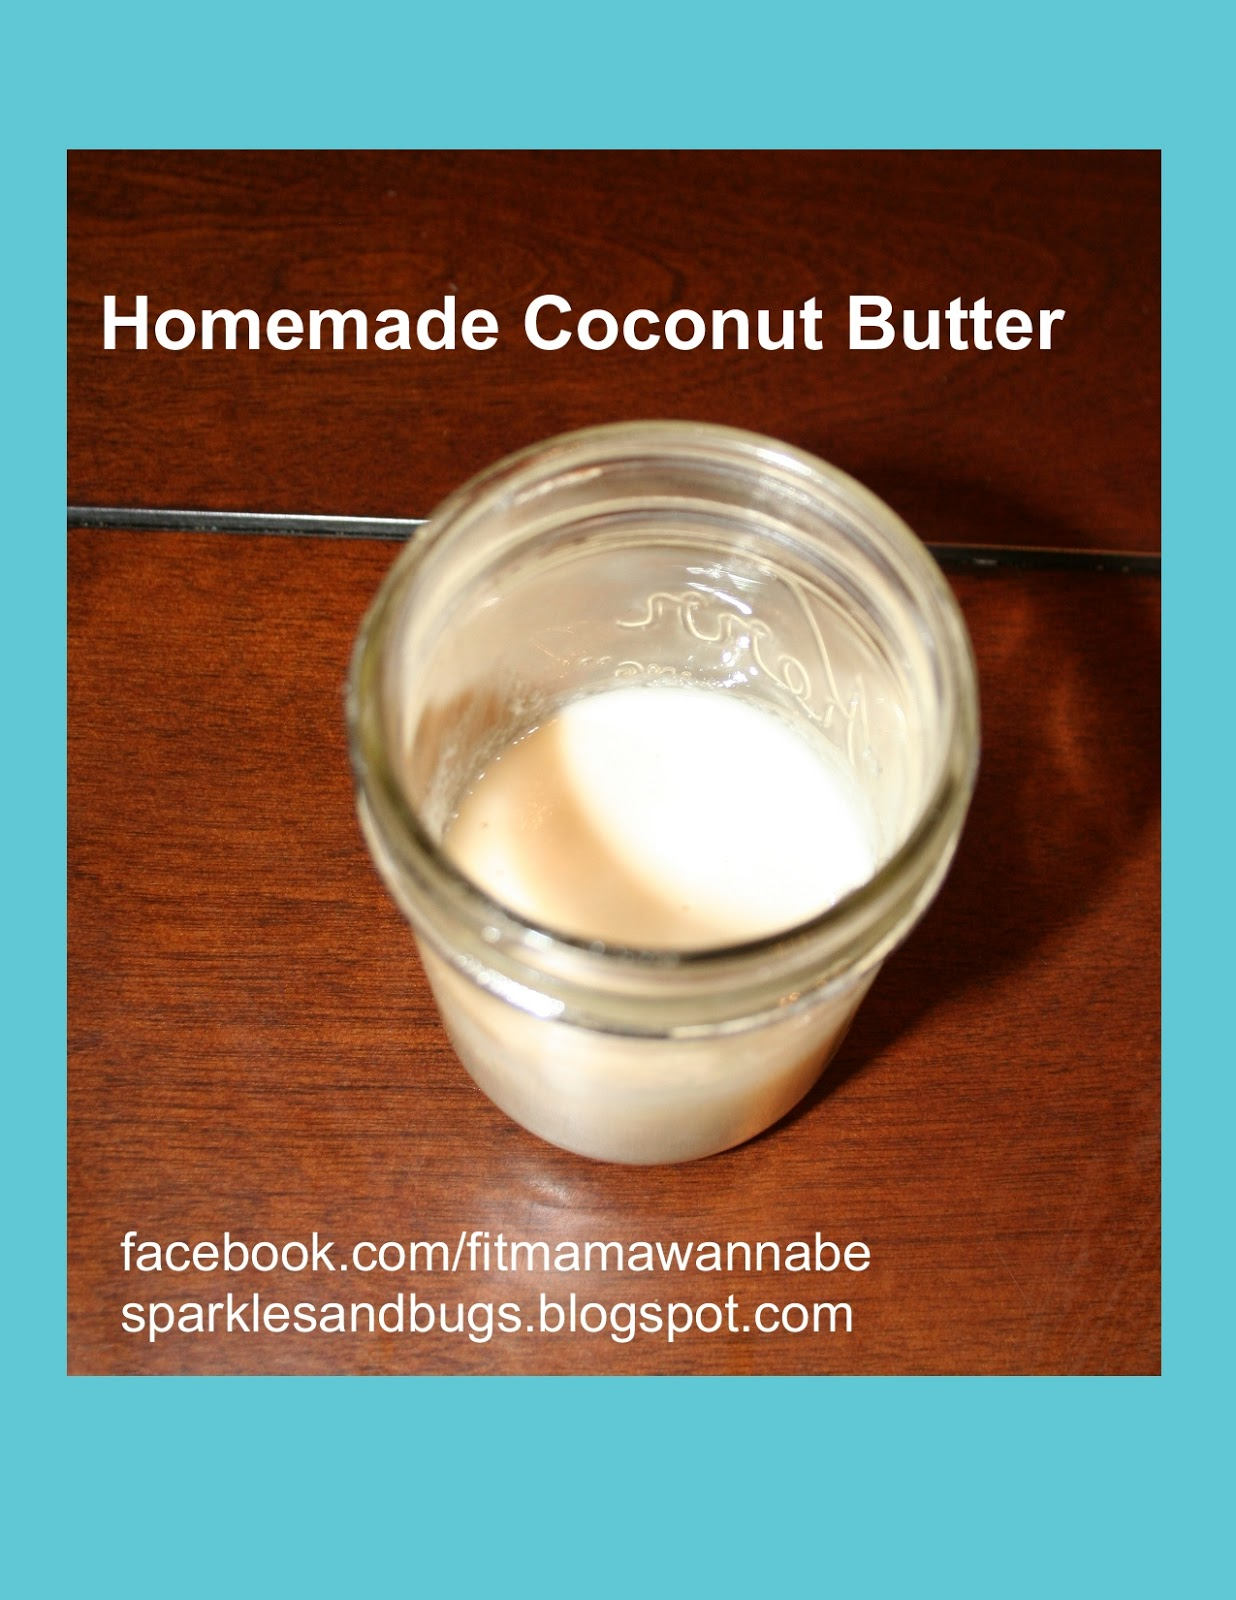 Healthy Happy Fit: Homemade Coconut Butter